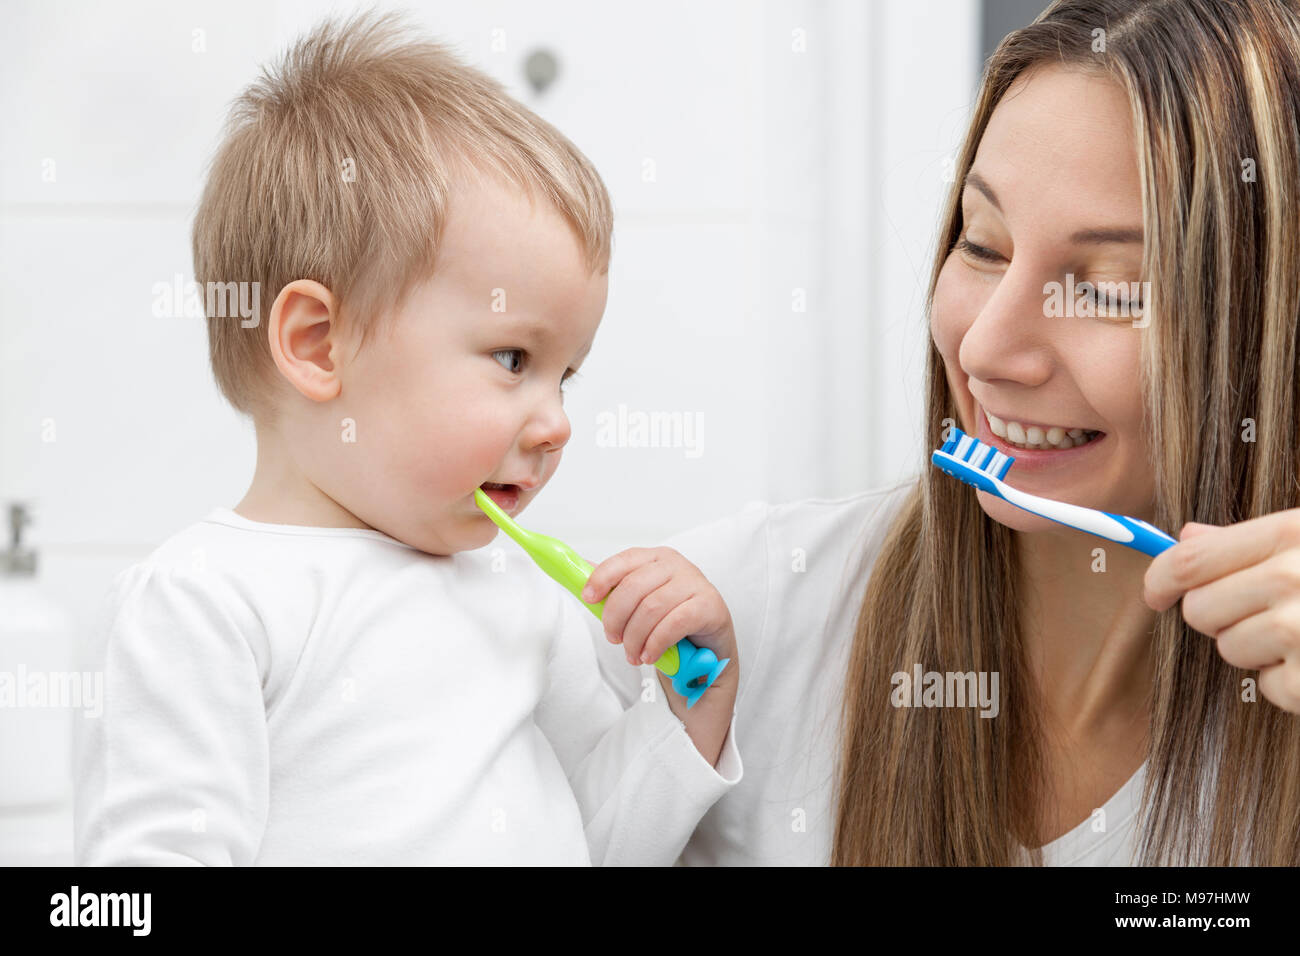 Happy mother teaching her son how to bush teeth in the bathroom - Stock Image